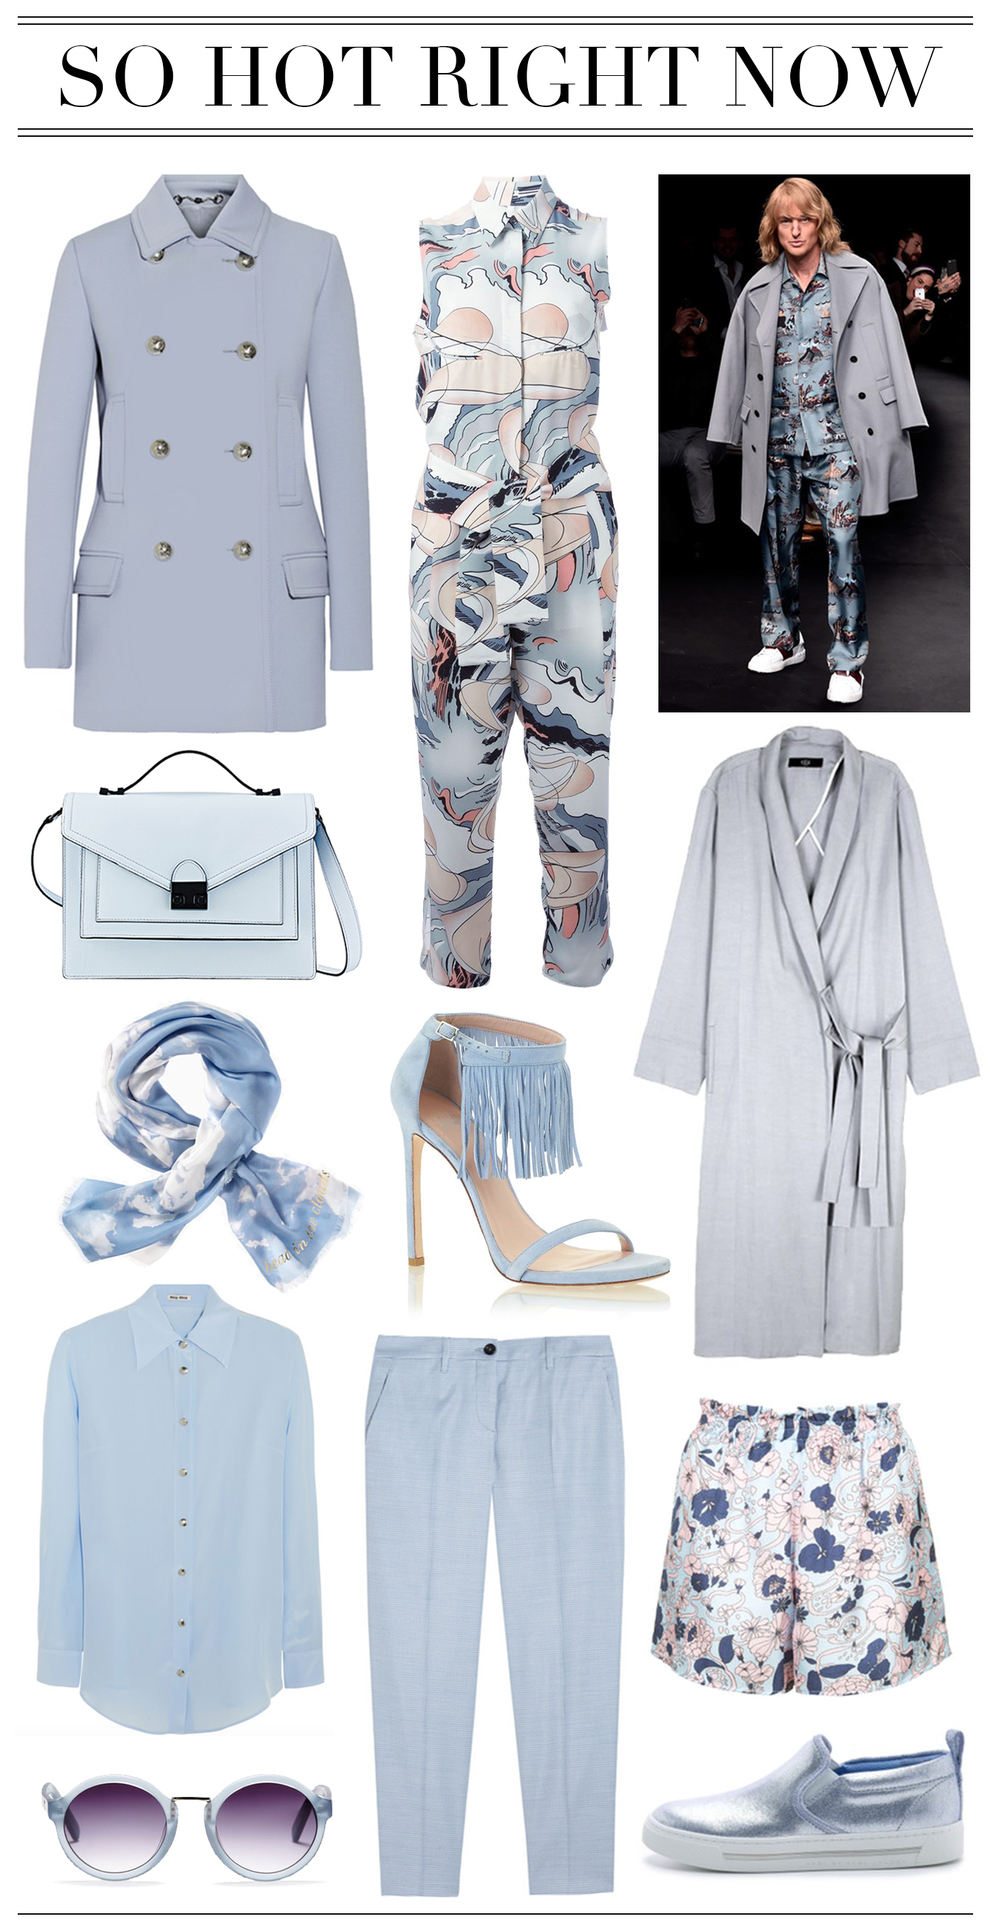 Left to right, top to bottom: 1. Gucci Wool-Crepe Coat2. MaisonMarginal Abstract Print Jumpsuit3. Loeffler Randal Rider Bag4.Tibi Kimono Maxi Coat 5. Kate Spade Day Sky Square Scarf (Day, D-A-I-Y-E. Okay?) 6. Stuart Weitzman Lovefringe7. Miu Miu Washed Silk Shirt8.Miu Miu Houndstooth Stretch-Woven Straight Leg Pants 9. Topshop Silk Swirly Floral Print Shorts10. Whistles Daria Round Frosted Sunglasses11.Marc by Marc Jacobs Cute Kicks